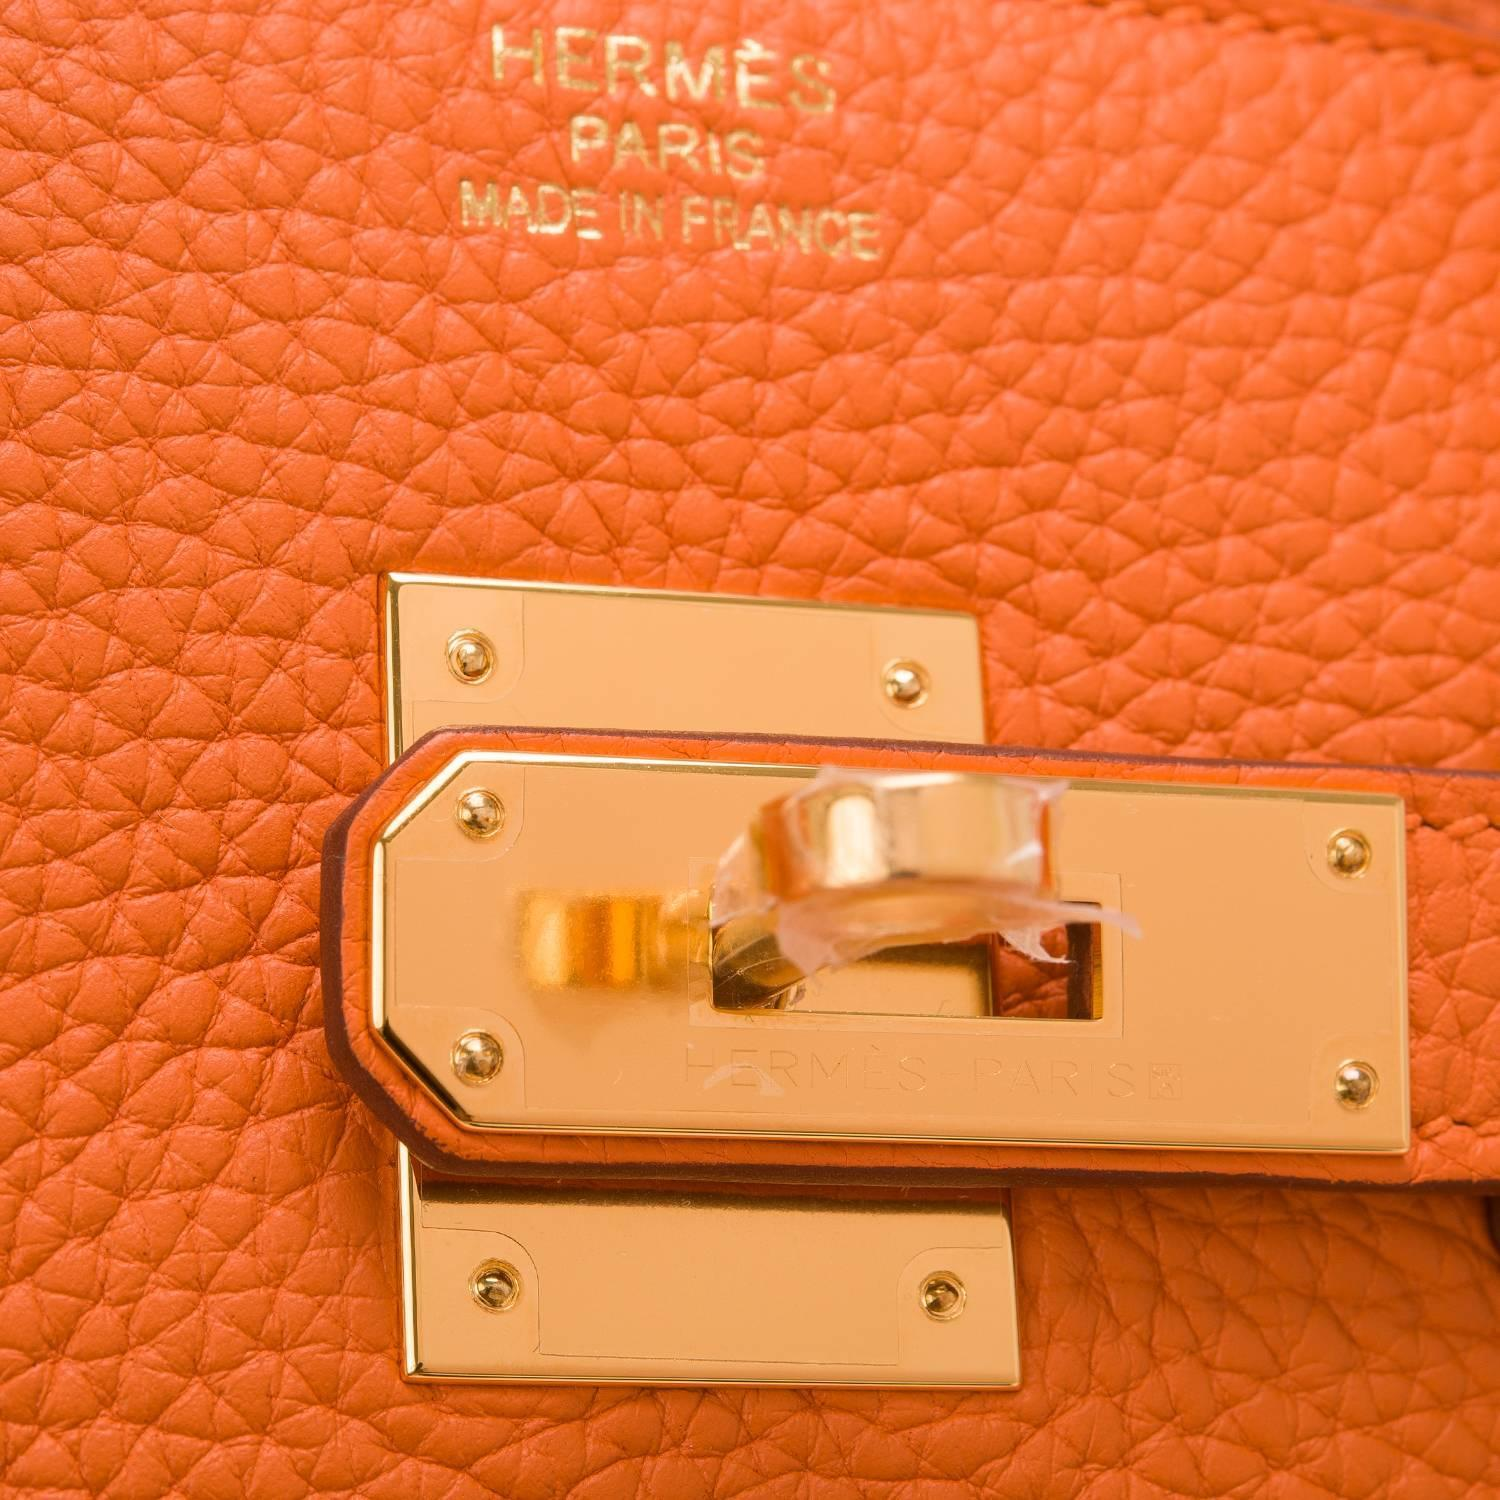 birkin bag replica cheap - Hermes Orange Clemence Birkin 35cm Gold Hardware at 1stdibs